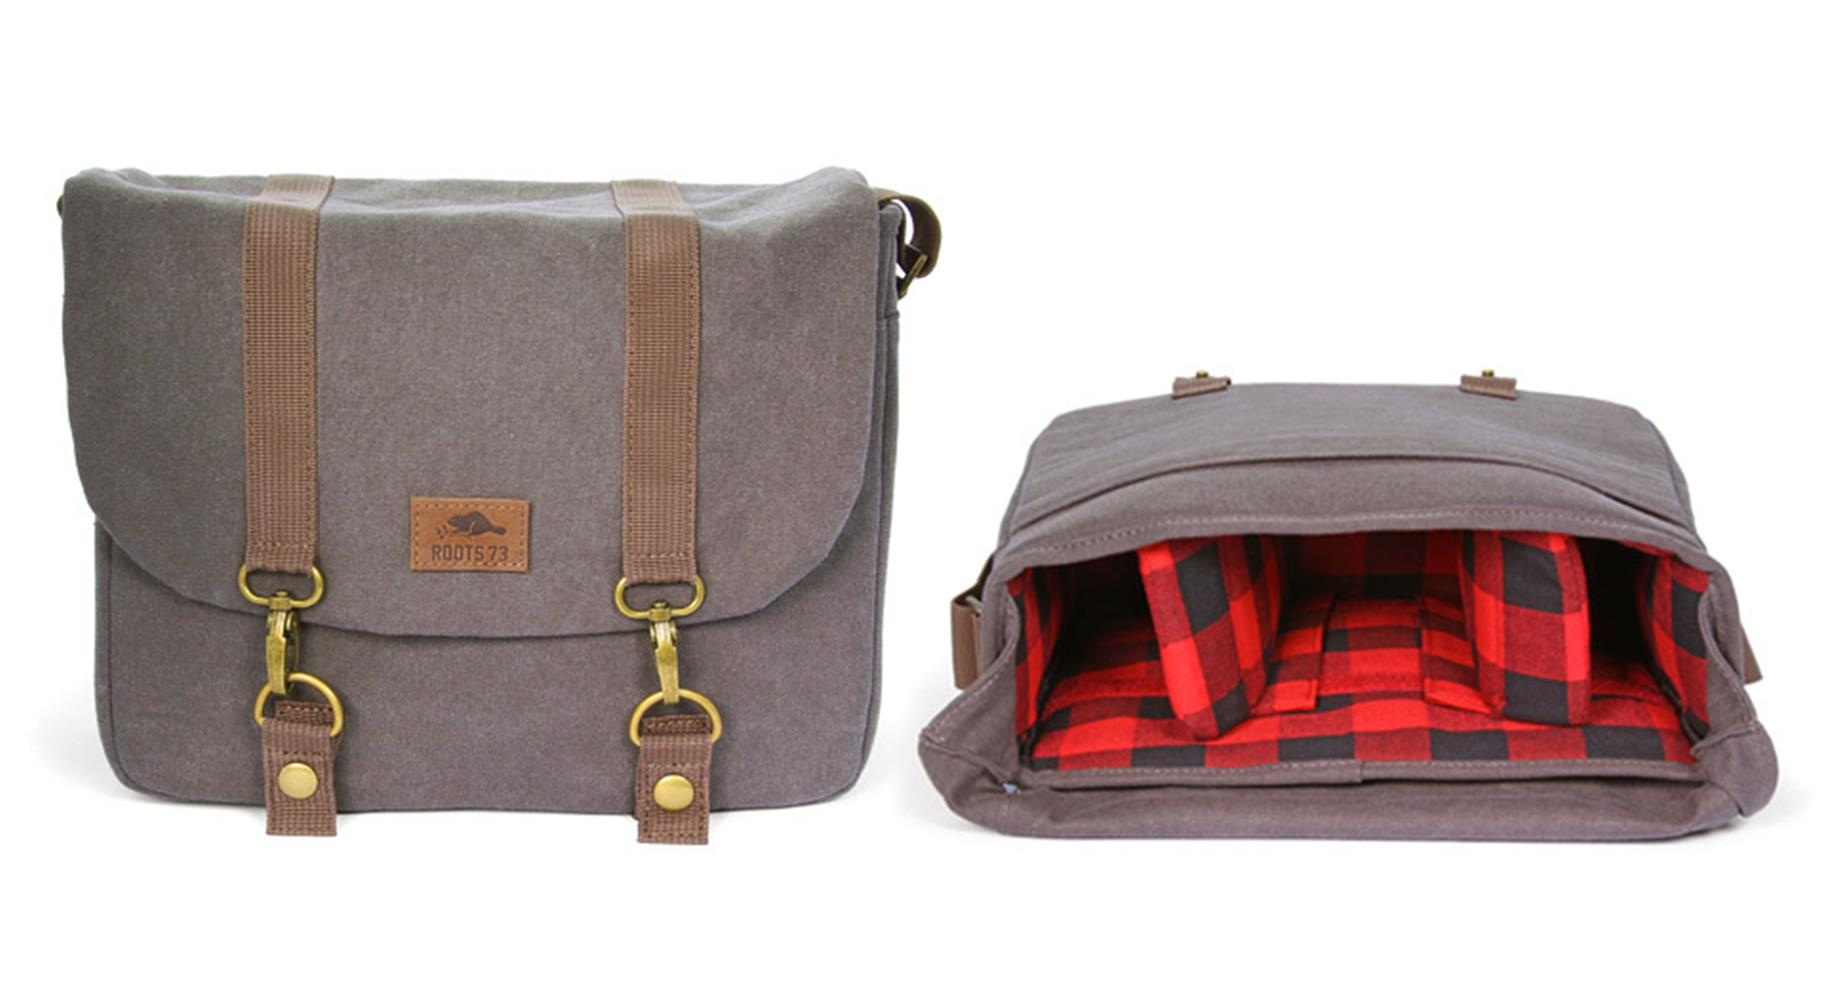 dd024899be5d Henrys.com   ROOTS 73 FLANNEL COLLECTION L MESSENGER